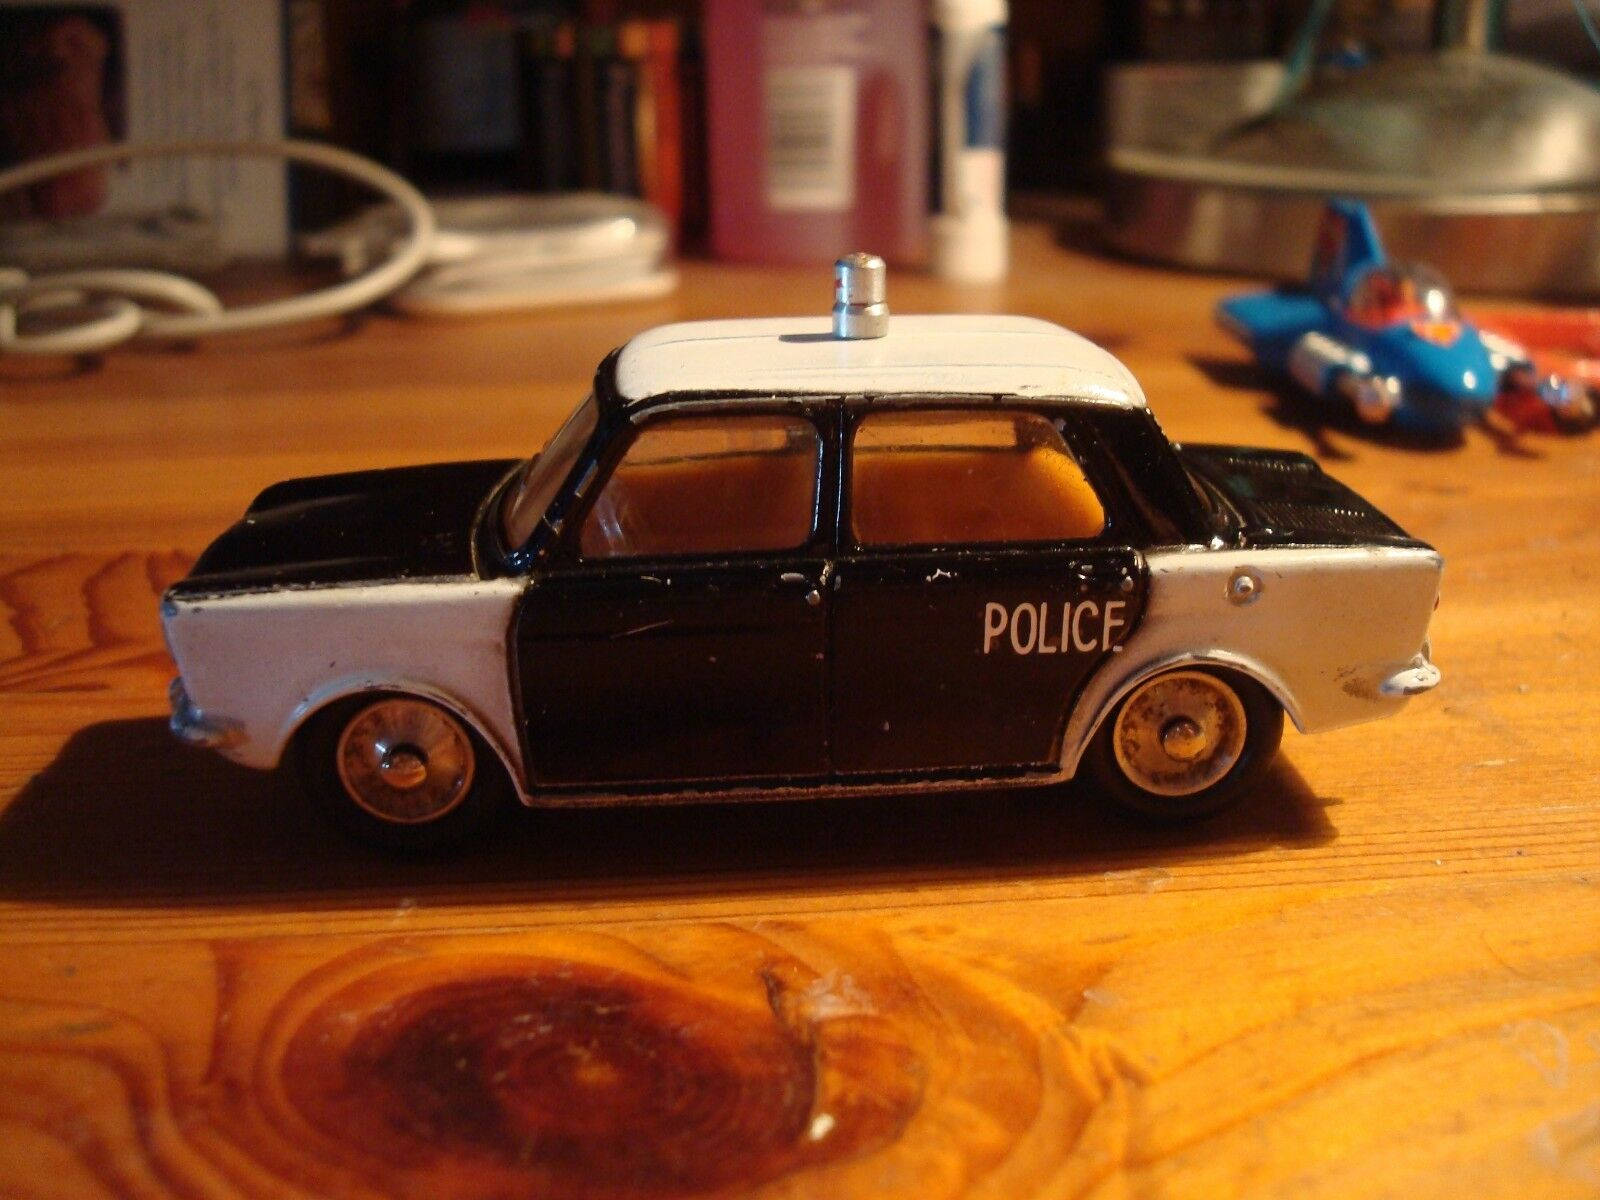 Nouvel an nouvelle couleur, impression  reste souvent souvent souvent CIJ EUROPARC 1/43 SIMCA 1000 1962 POLICE | Réduction